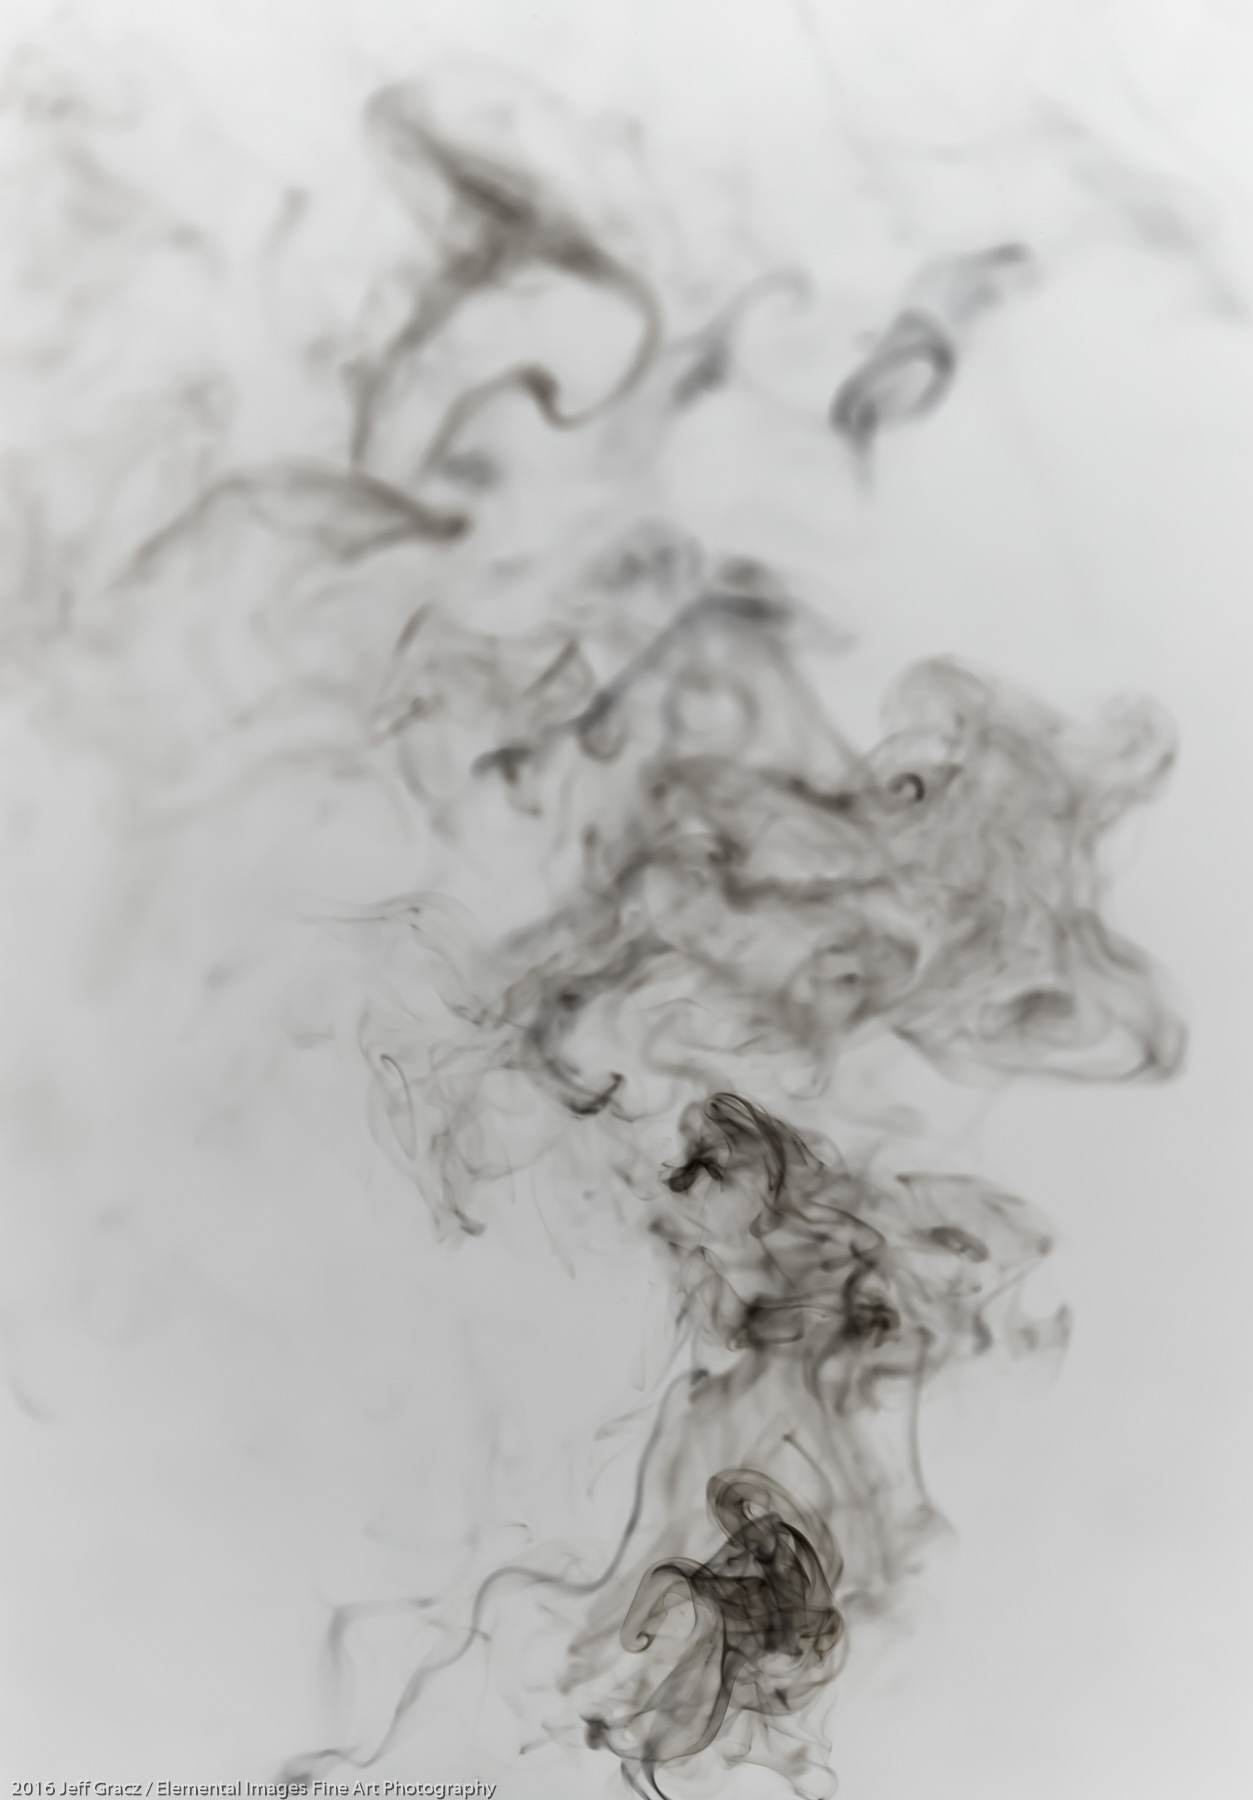 Smoke 13 | Vancouver | WA | USA - © 2016 Jeff Gracz / Elemental Images Fine Art Photography - All Rights Reserved Worldwide